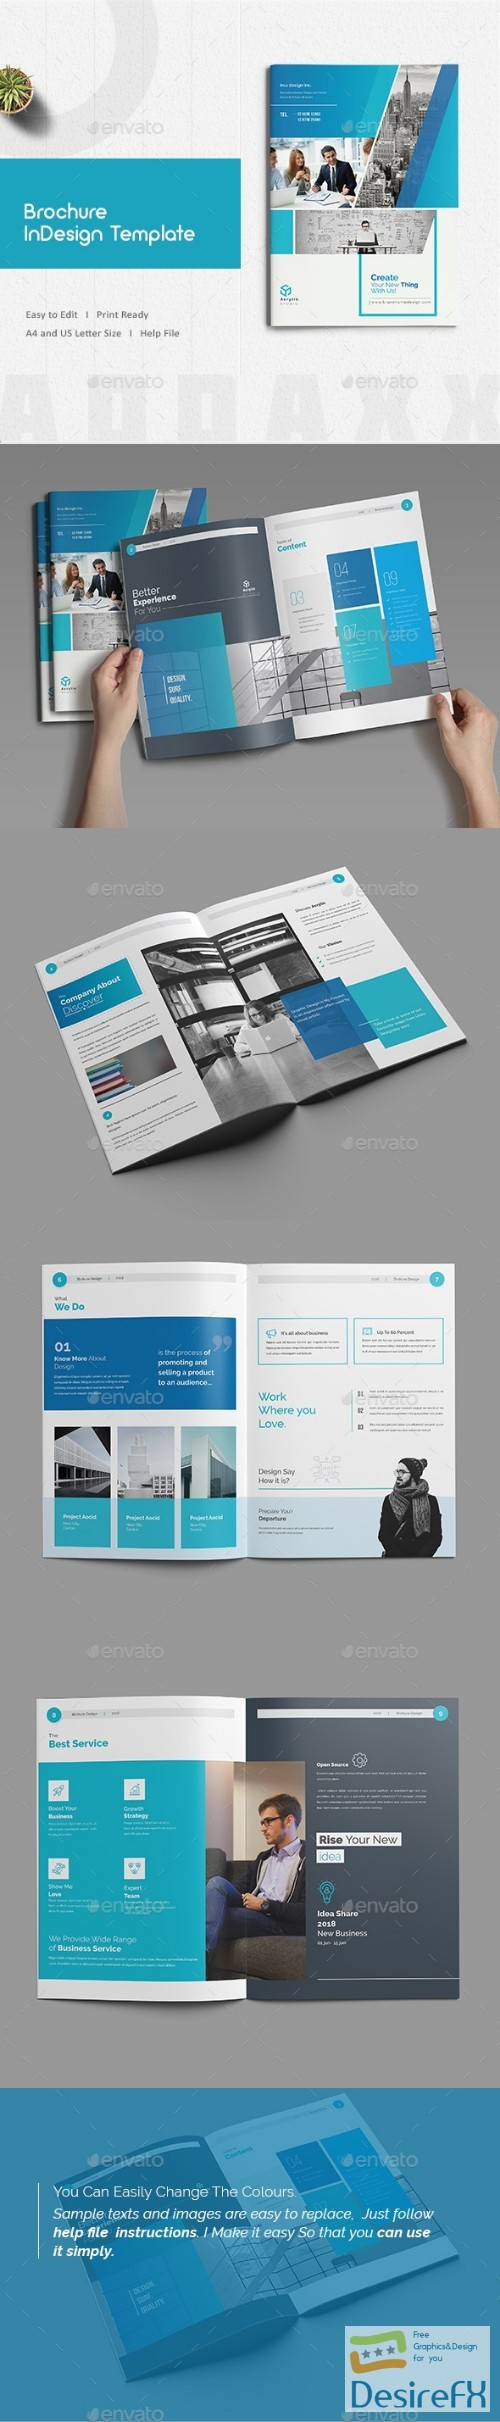 brochure template indesign free download - download free graphicriver brochure